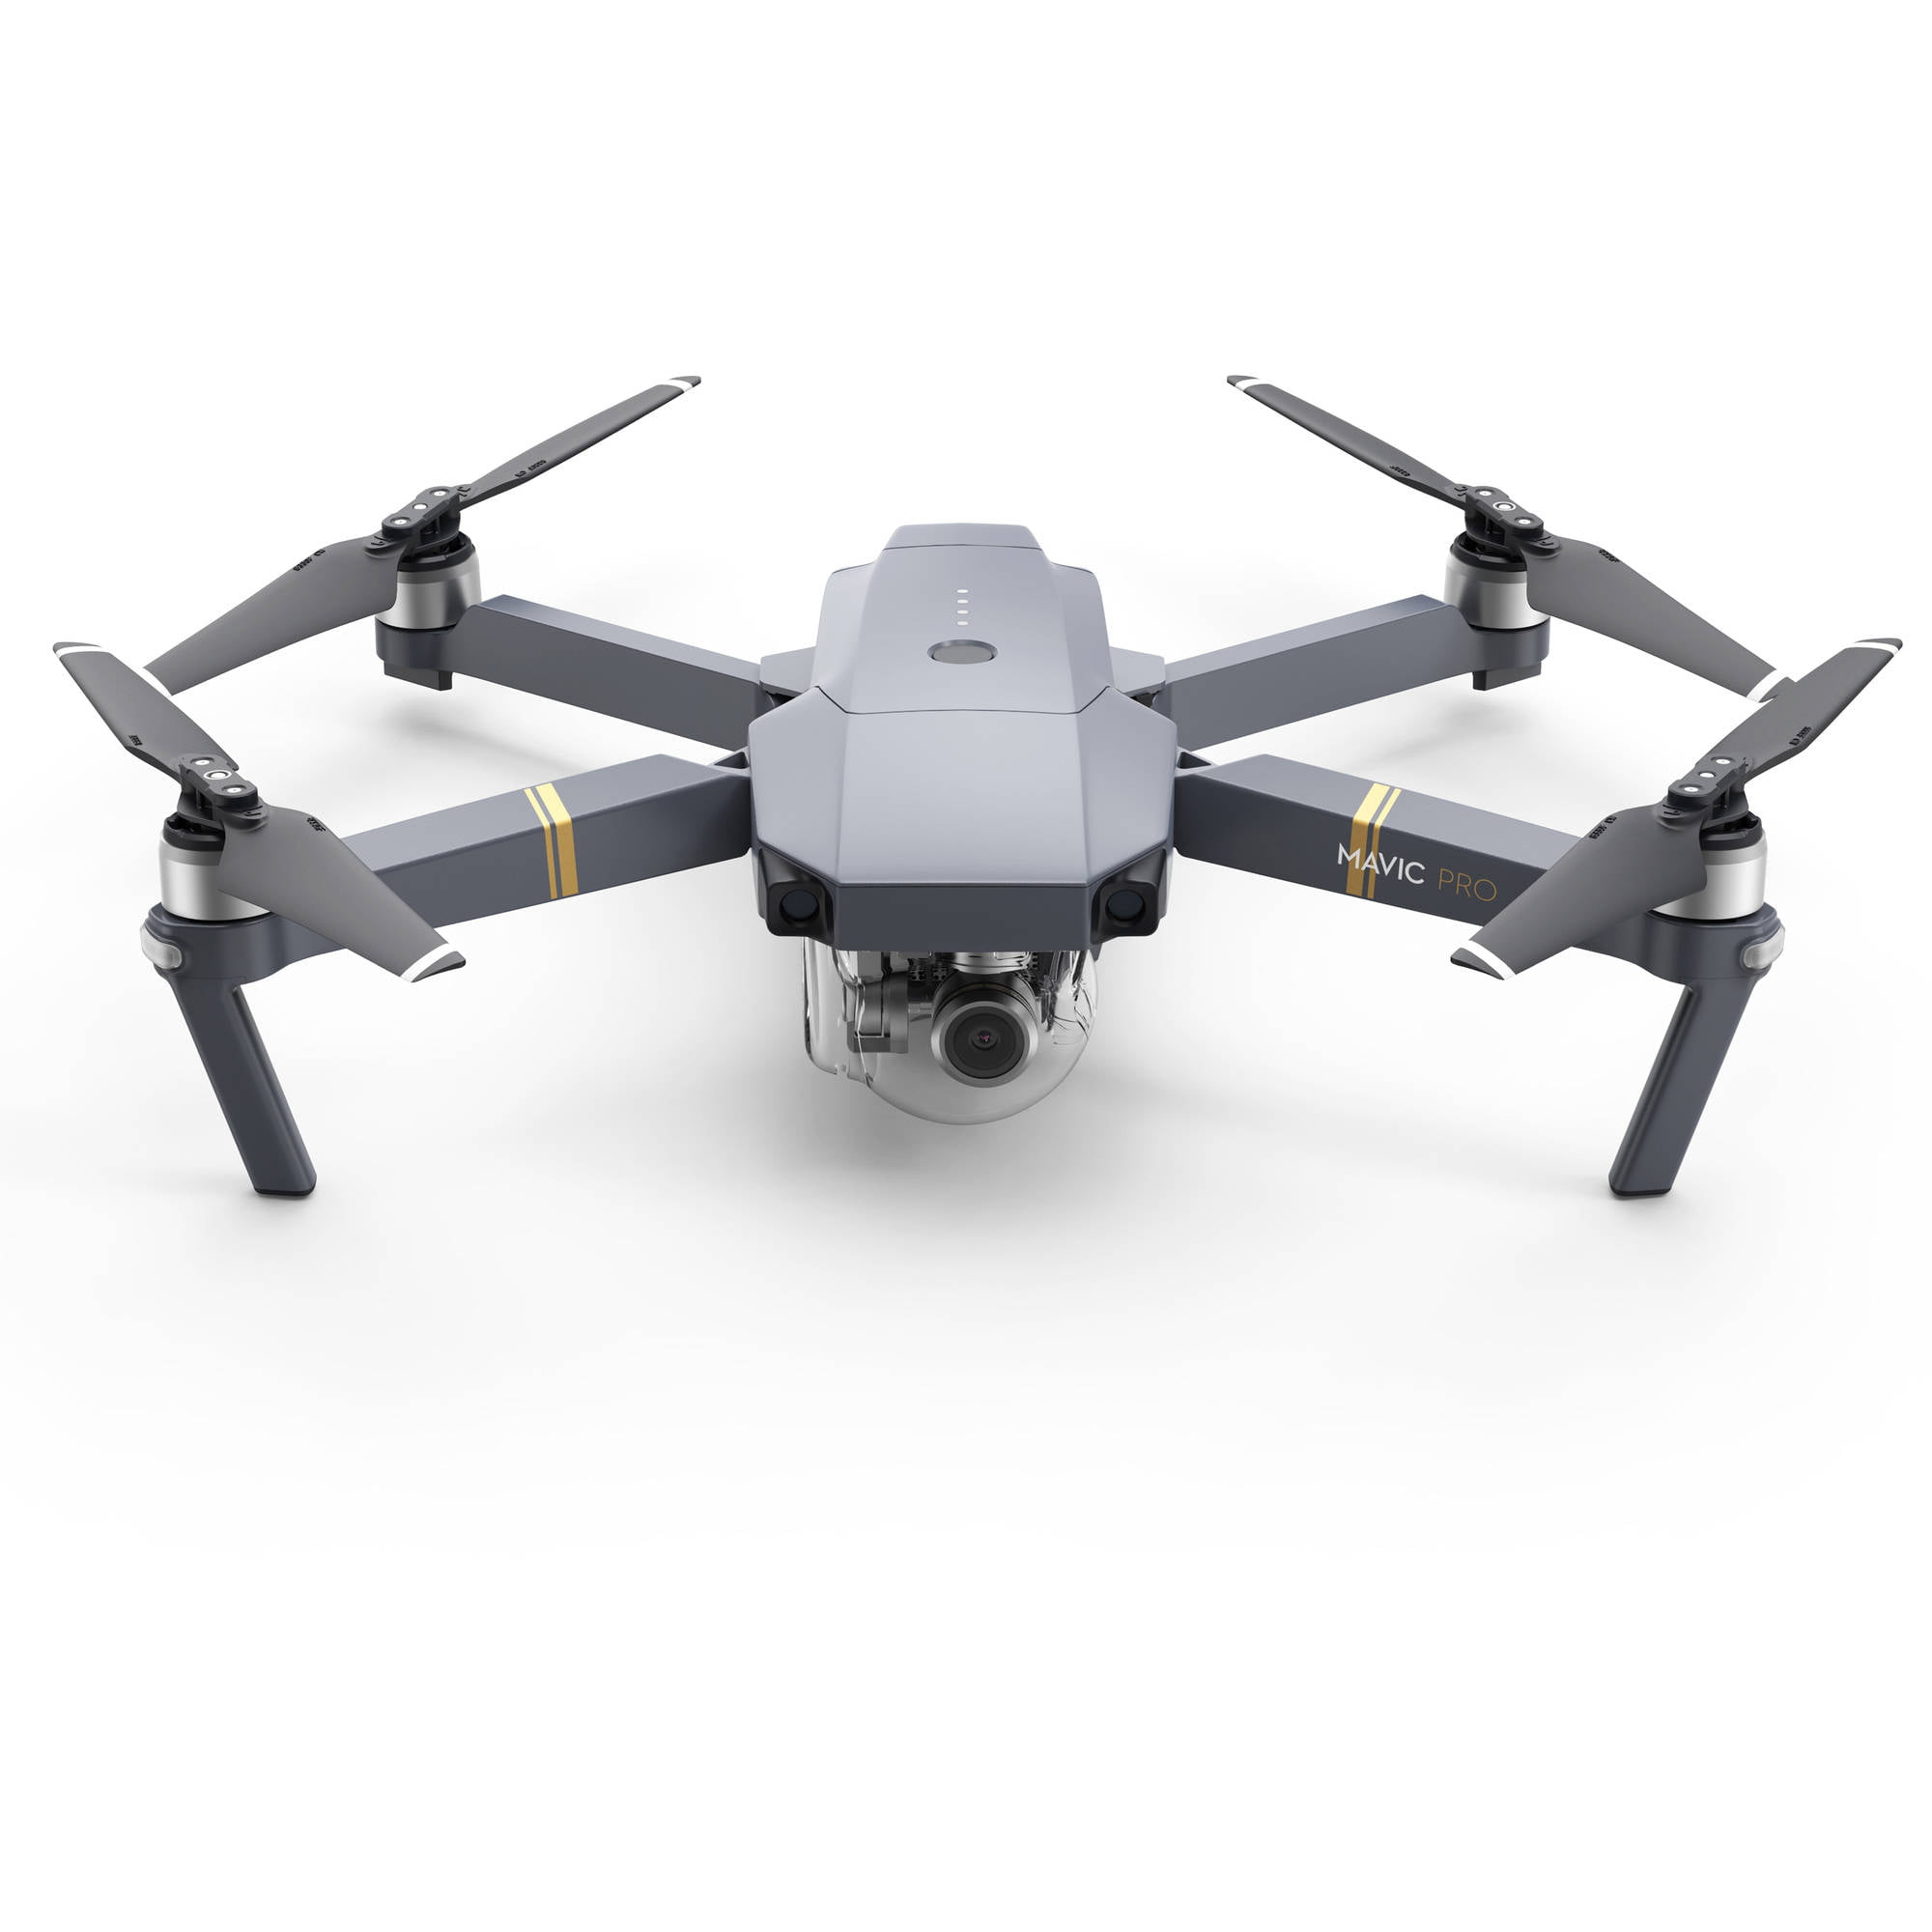 Dji Mavic Pro Quadcopter Drone With Remote Controller, Gray by DJI